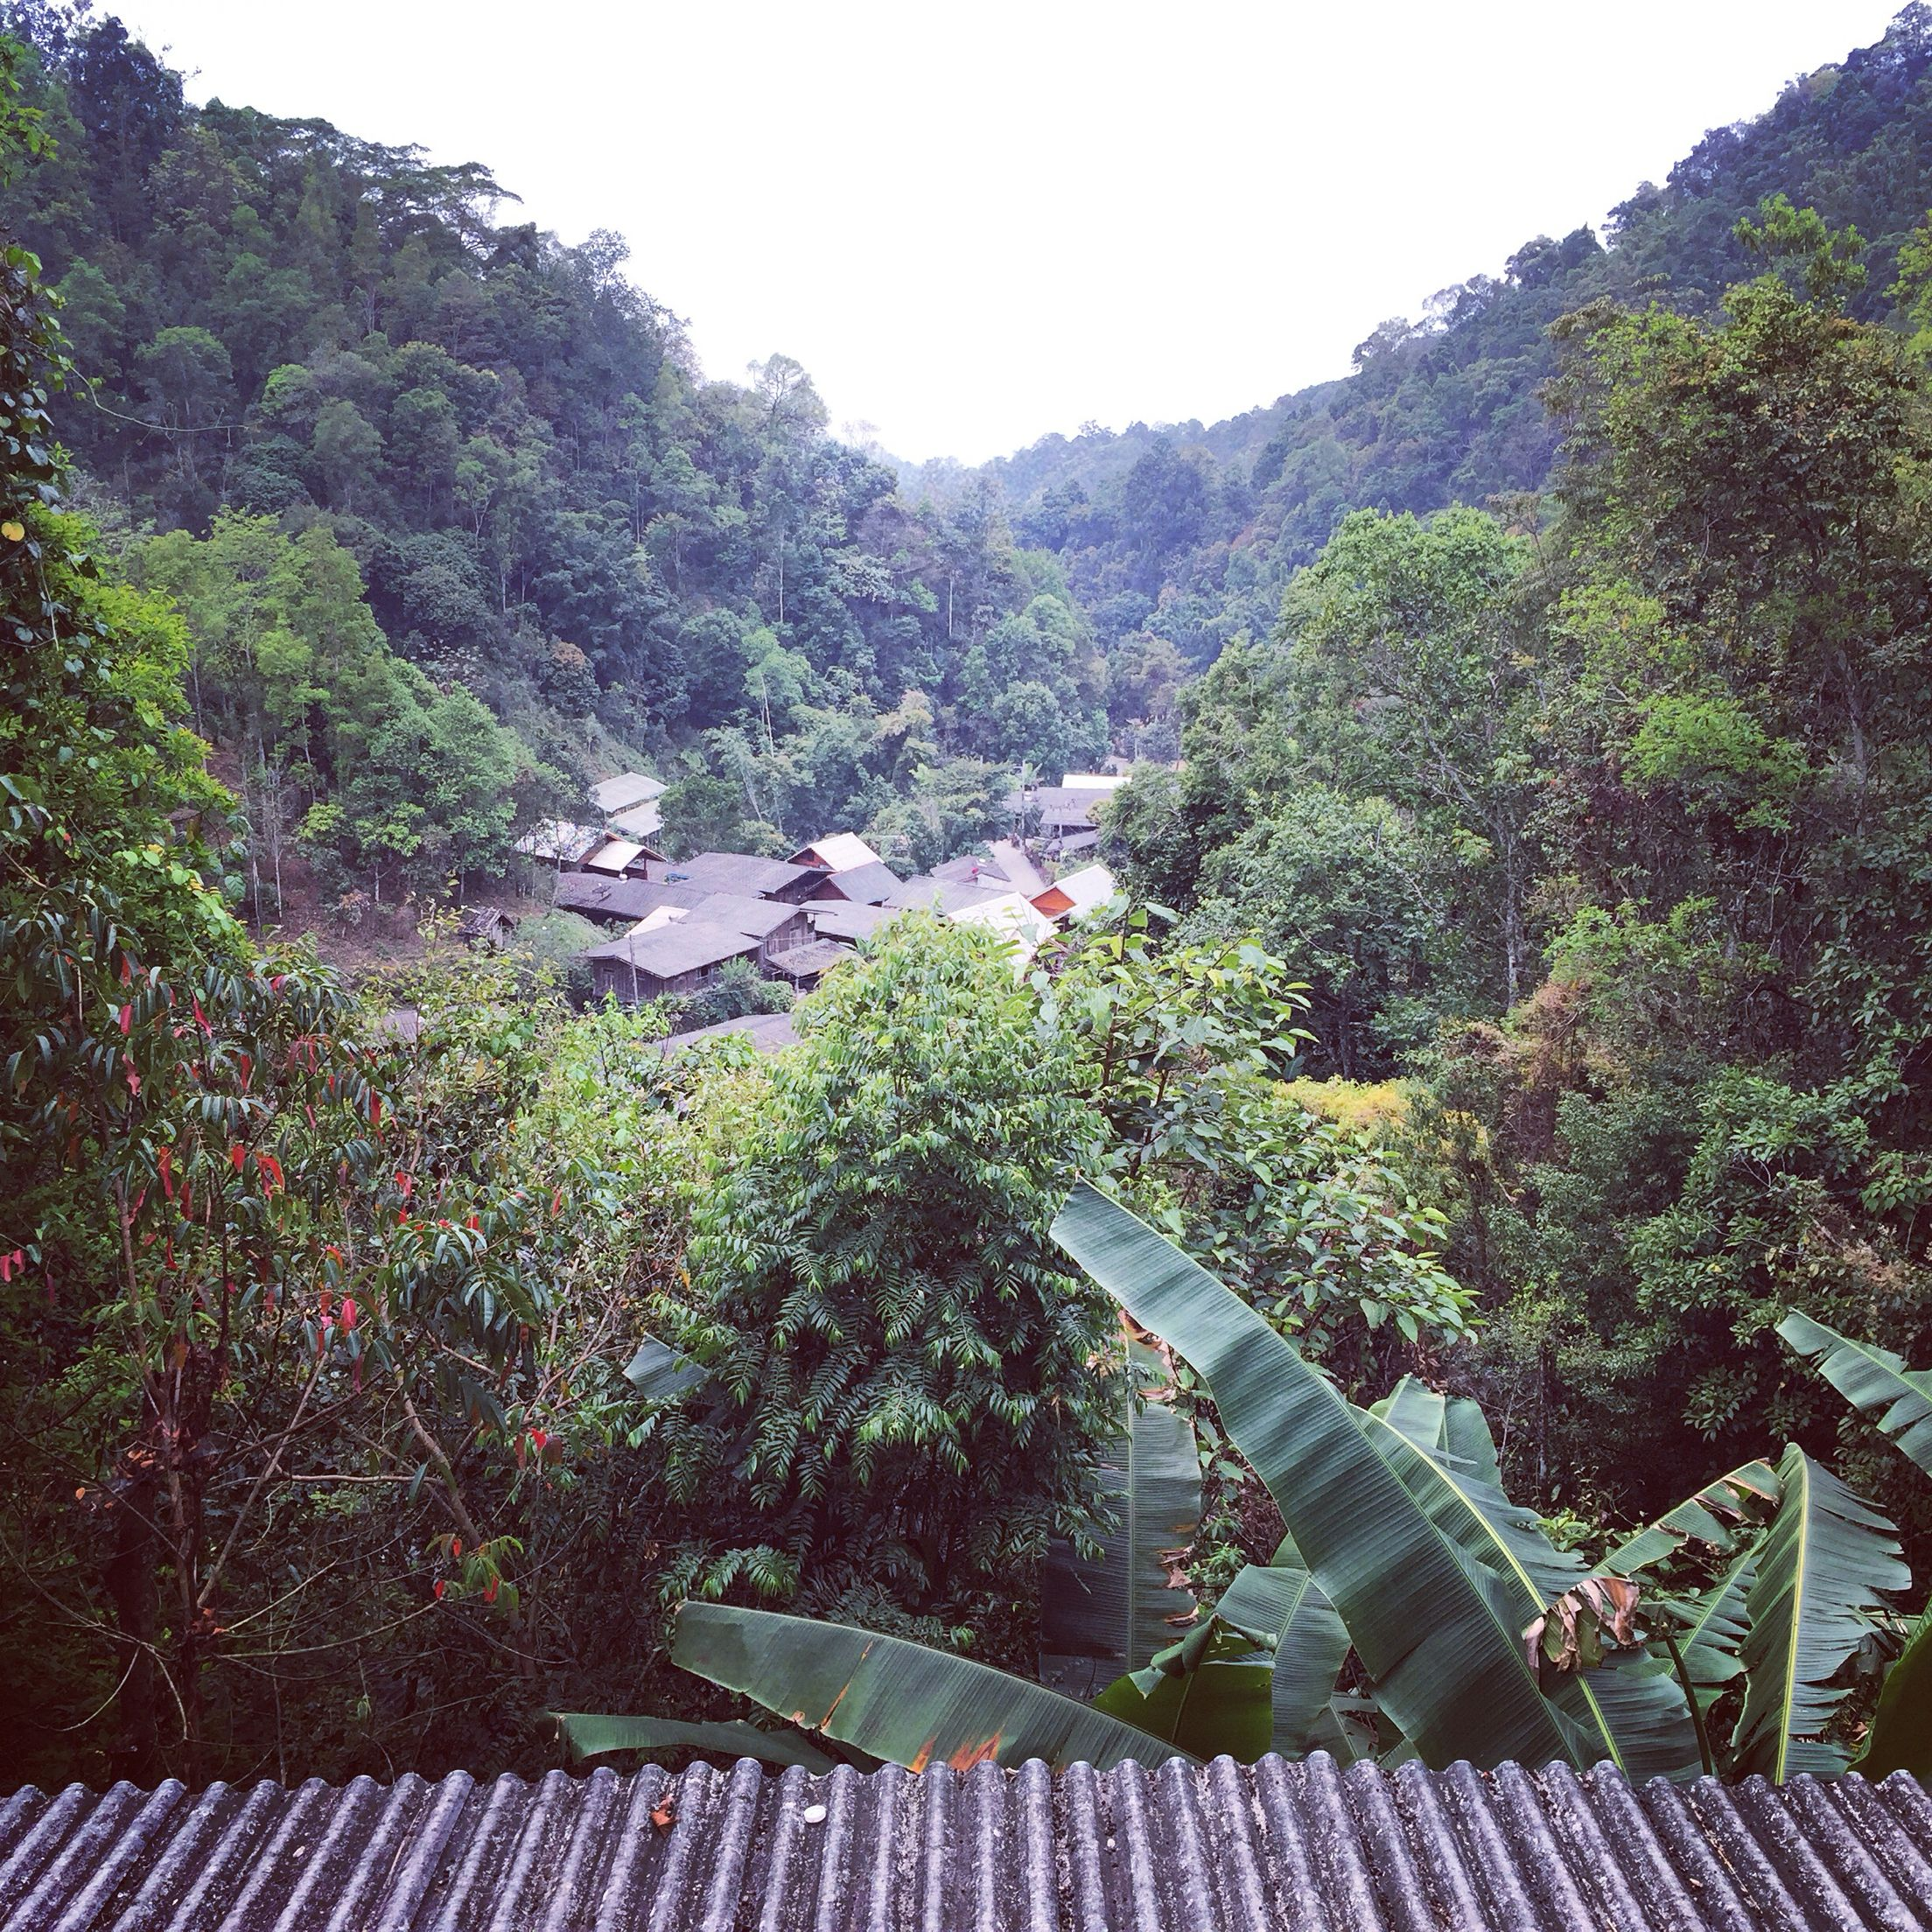 View Mae Kampong Village From Chom Nok Chom Ma Coffee Maeon Chiangmai Thailand 27 02 2016 16 Degree Celsius Outdoor Chiang Mai Favorite Places